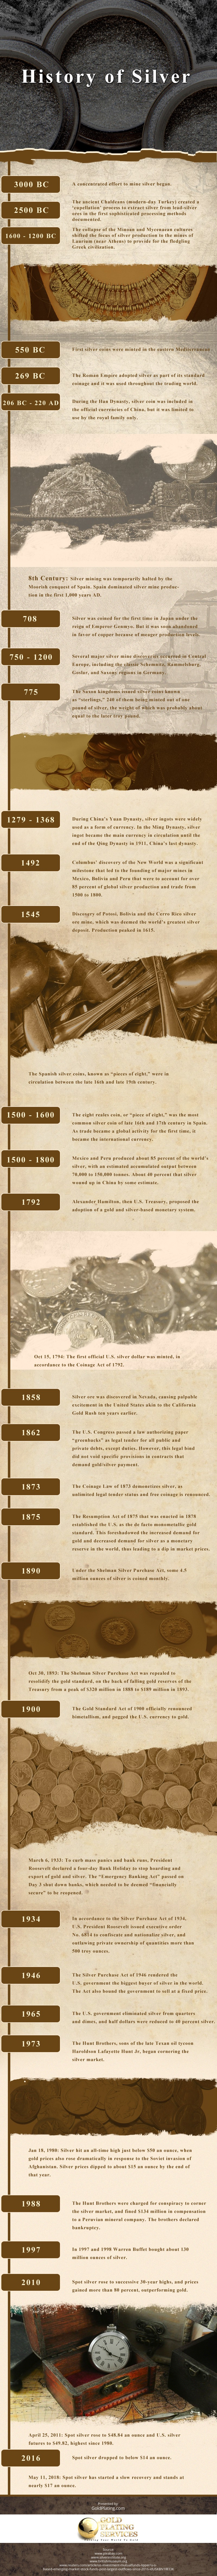 History-of-Silver Infographic